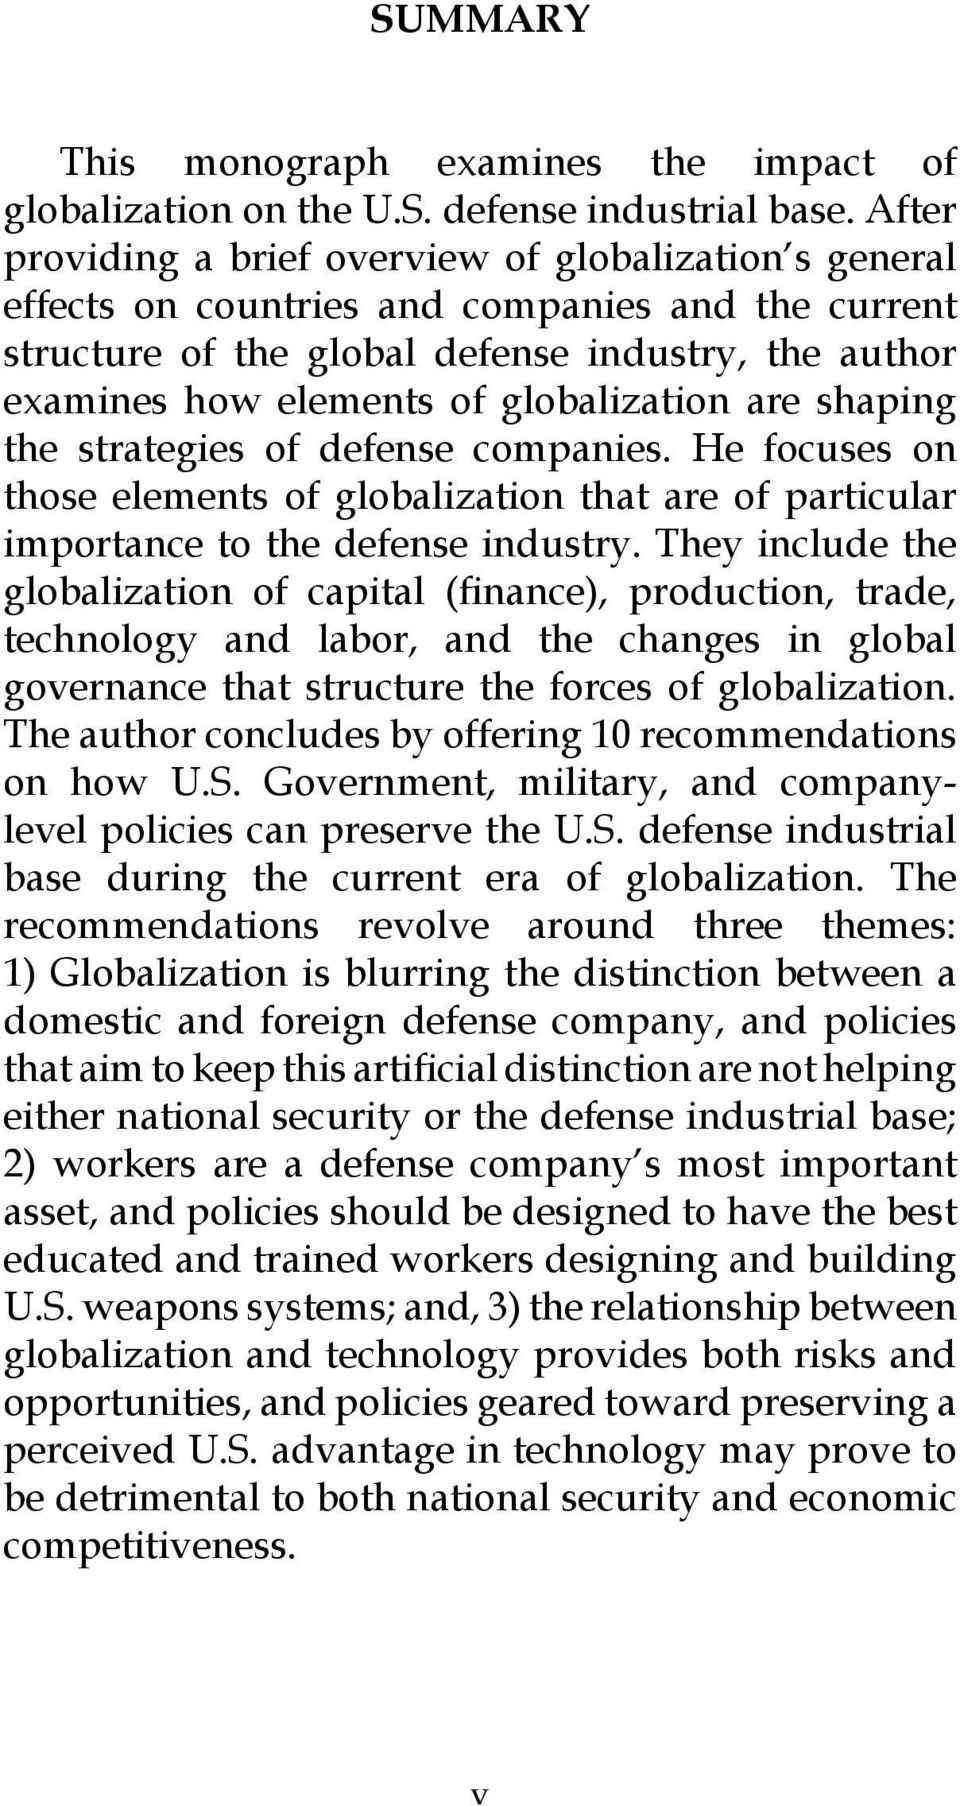 globalization are shaping the strategies of defense companies. He focuses on those elements of globalization that are of particular importance to the defense industry.